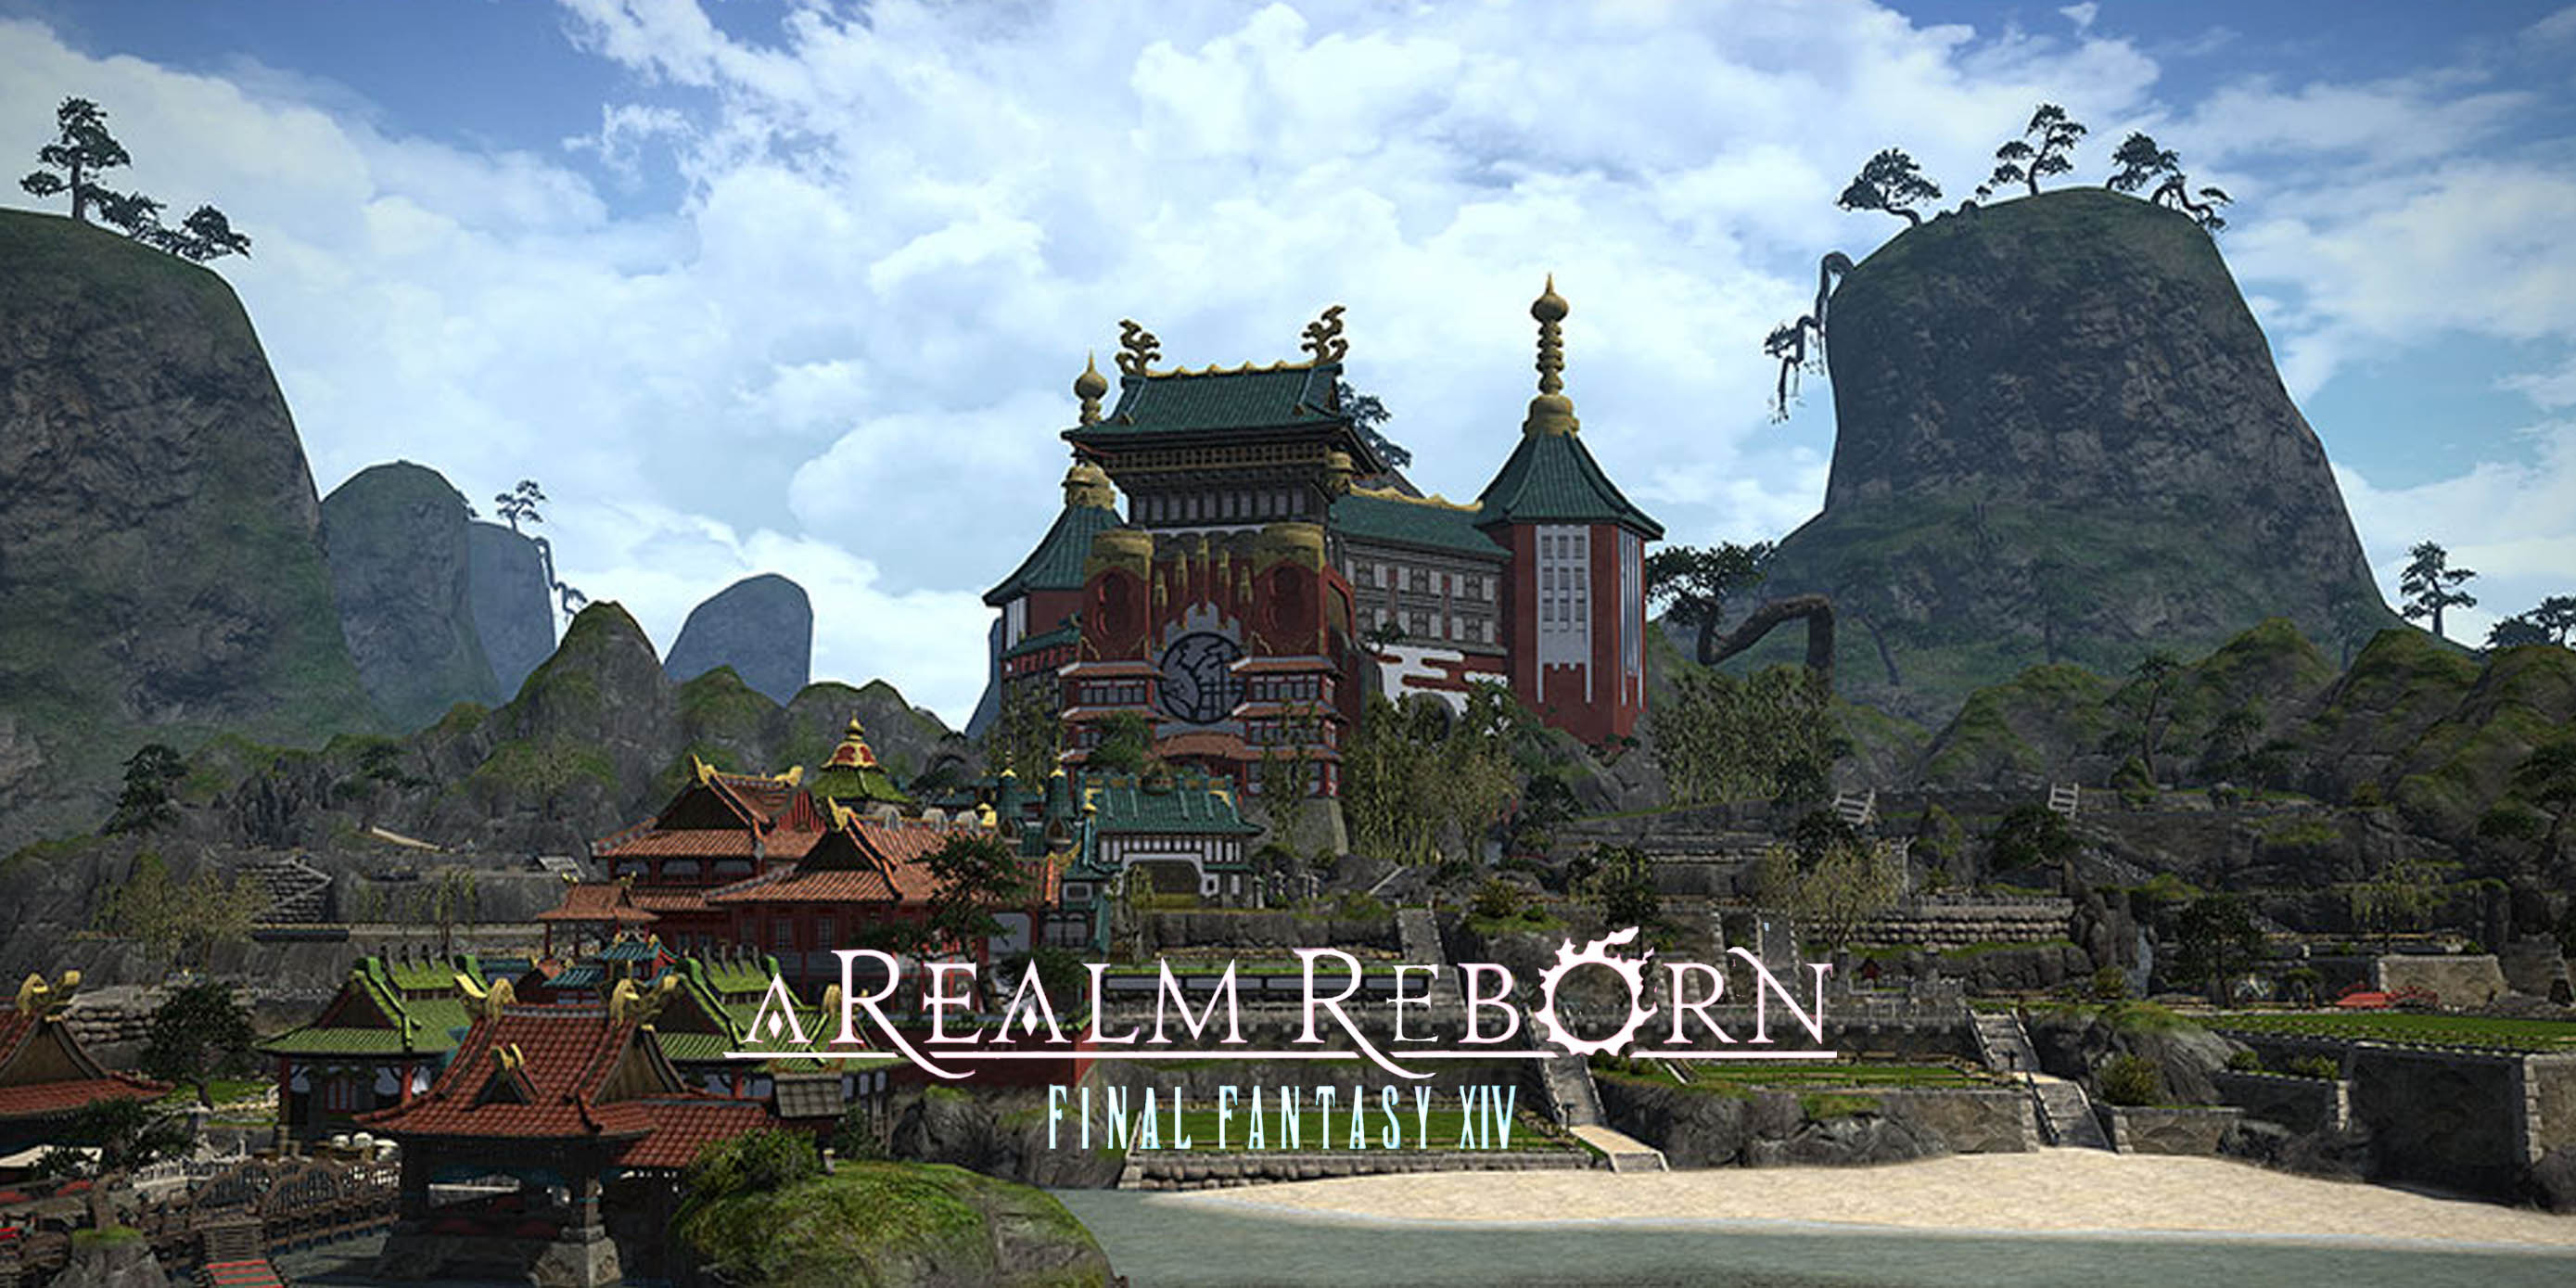 FF14 furnishing level all rights reserved